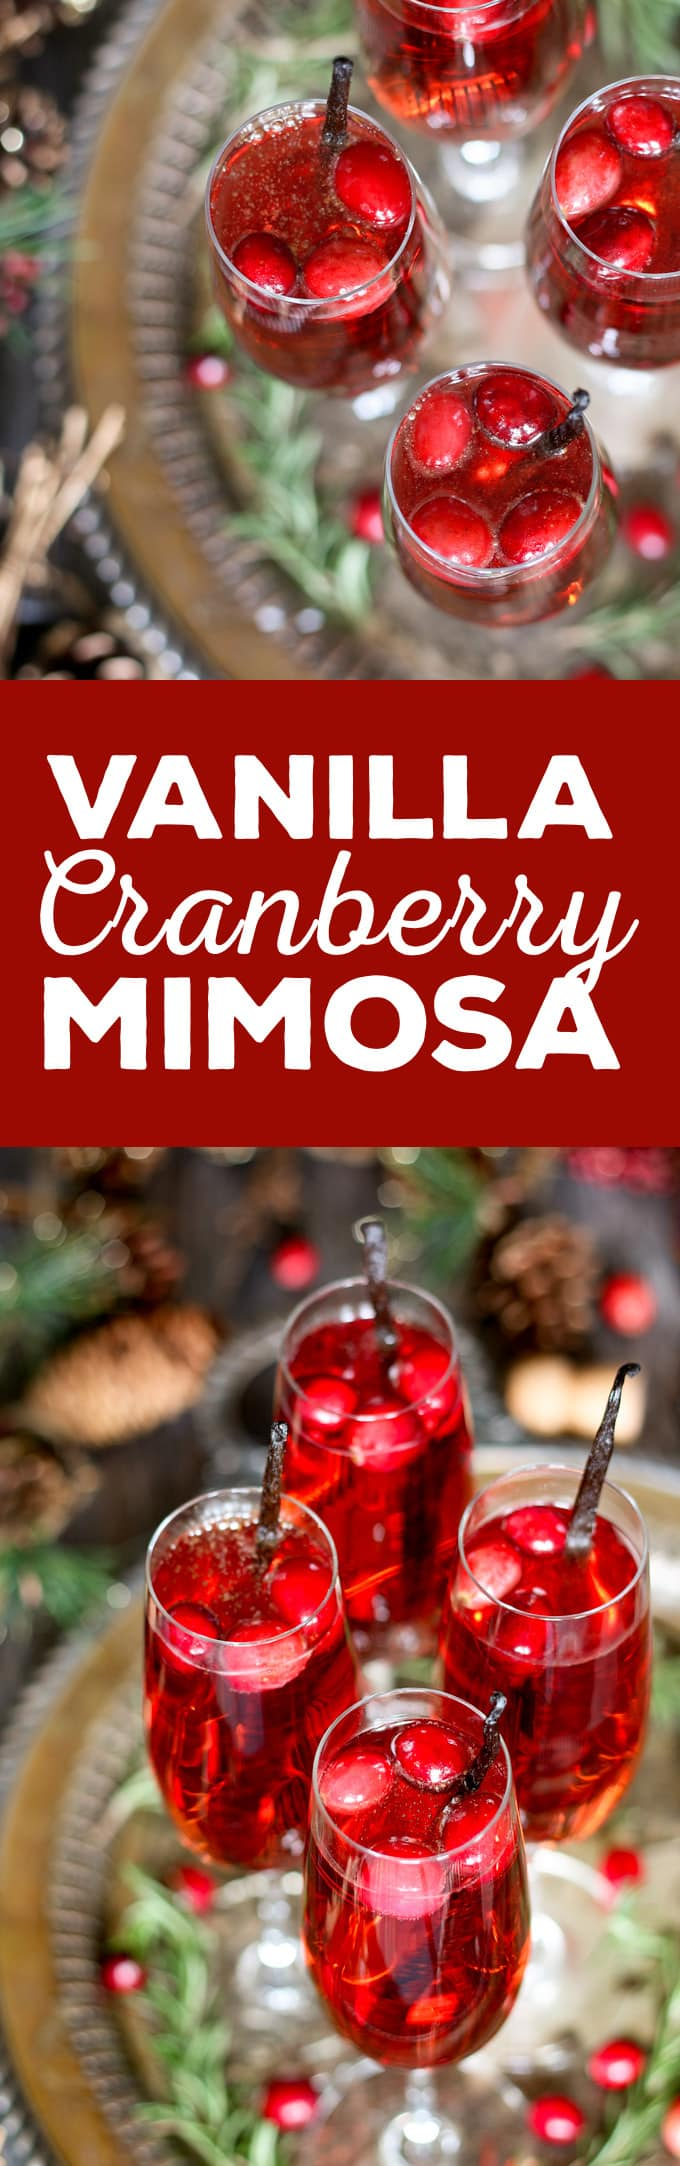 Pinterest image of vanilla cranberry mimosa